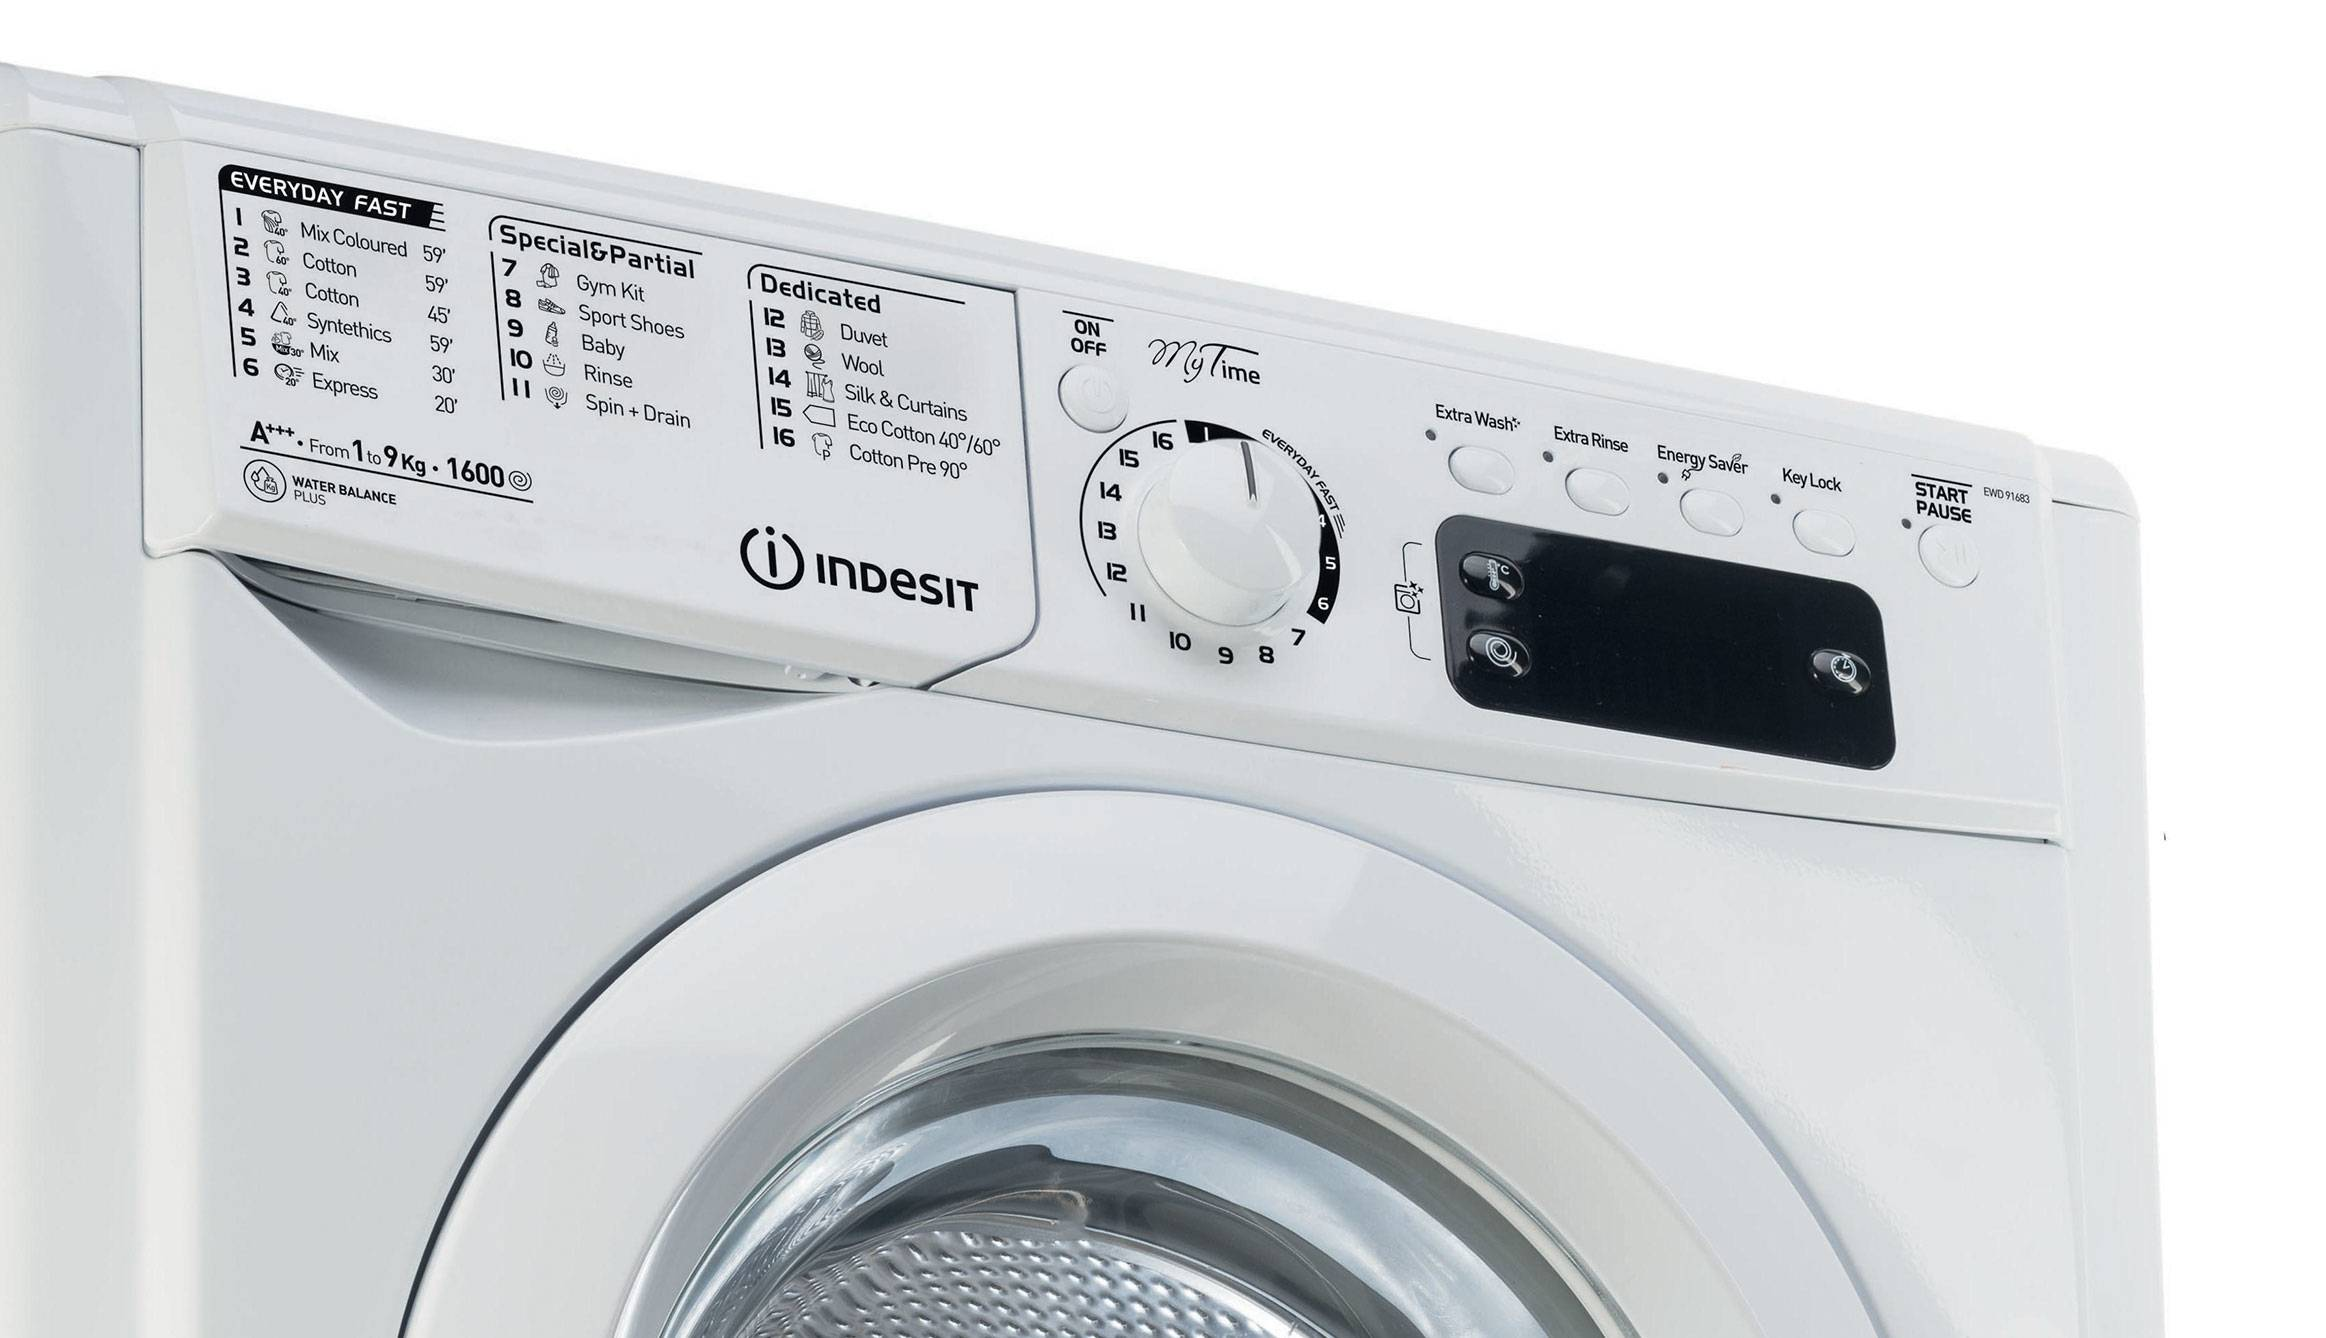 Washing machine: Class A+++ energy saving - My Time Indesit